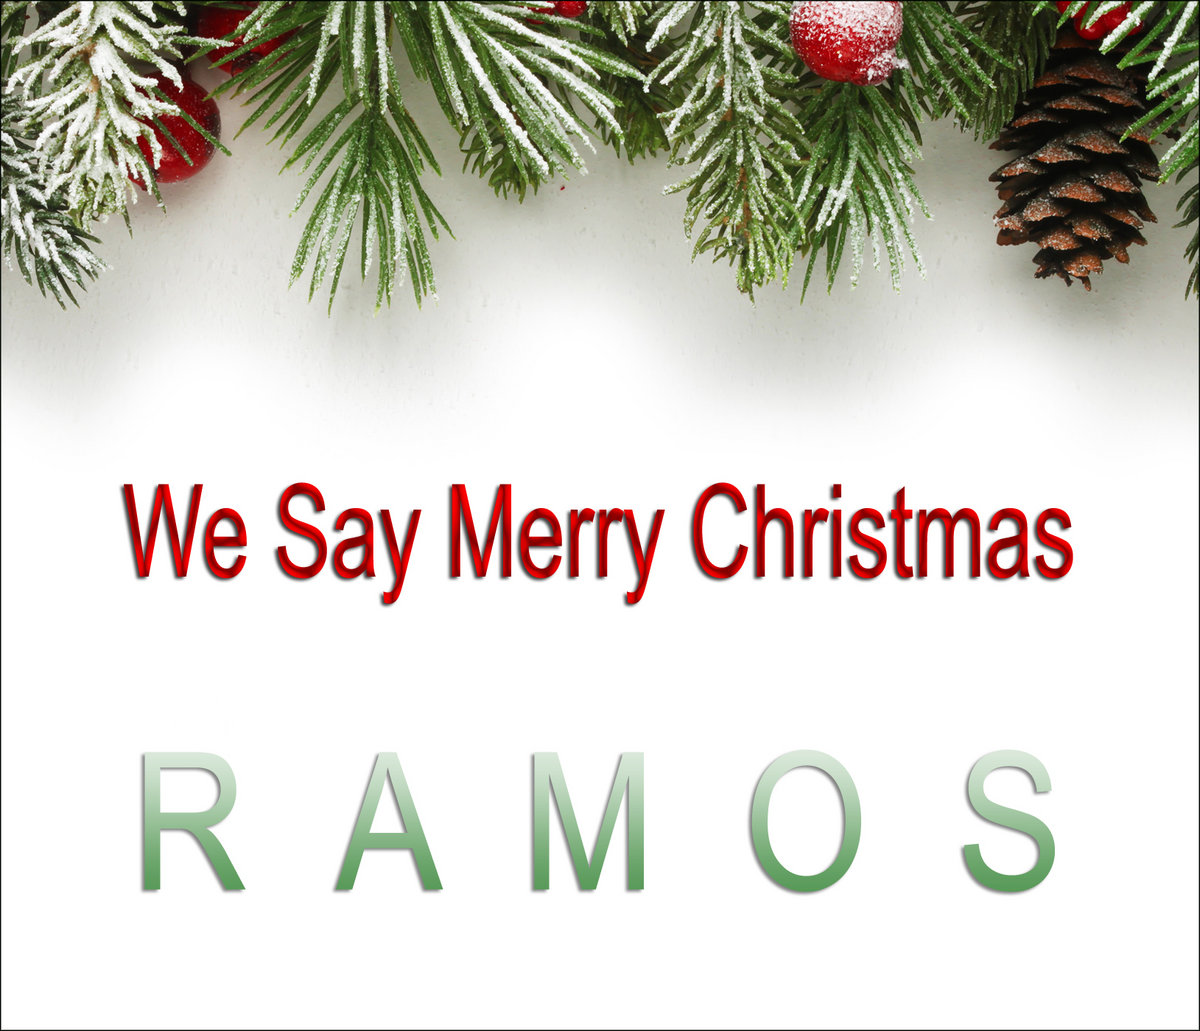 we say merry christmas by ramos